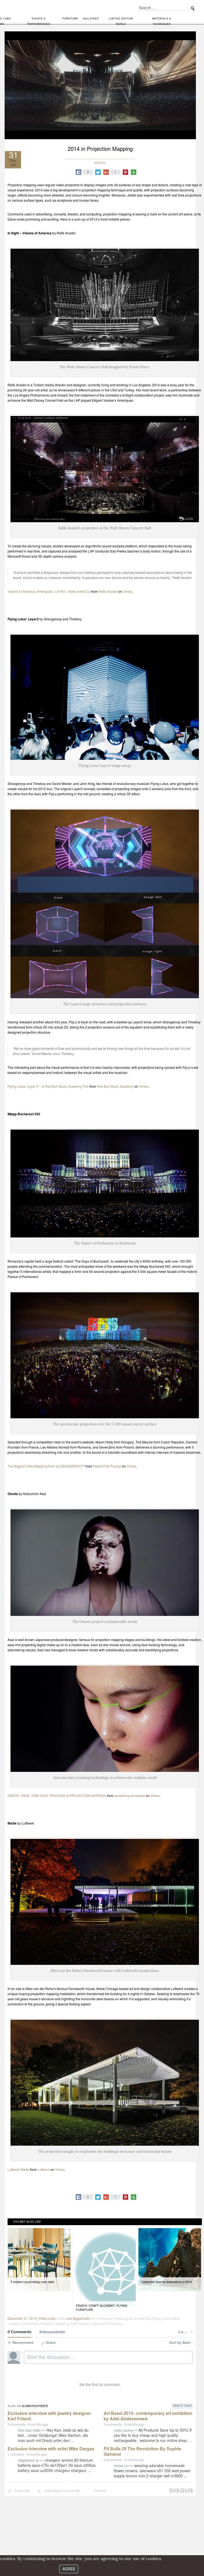 2014 in Projection Mapping